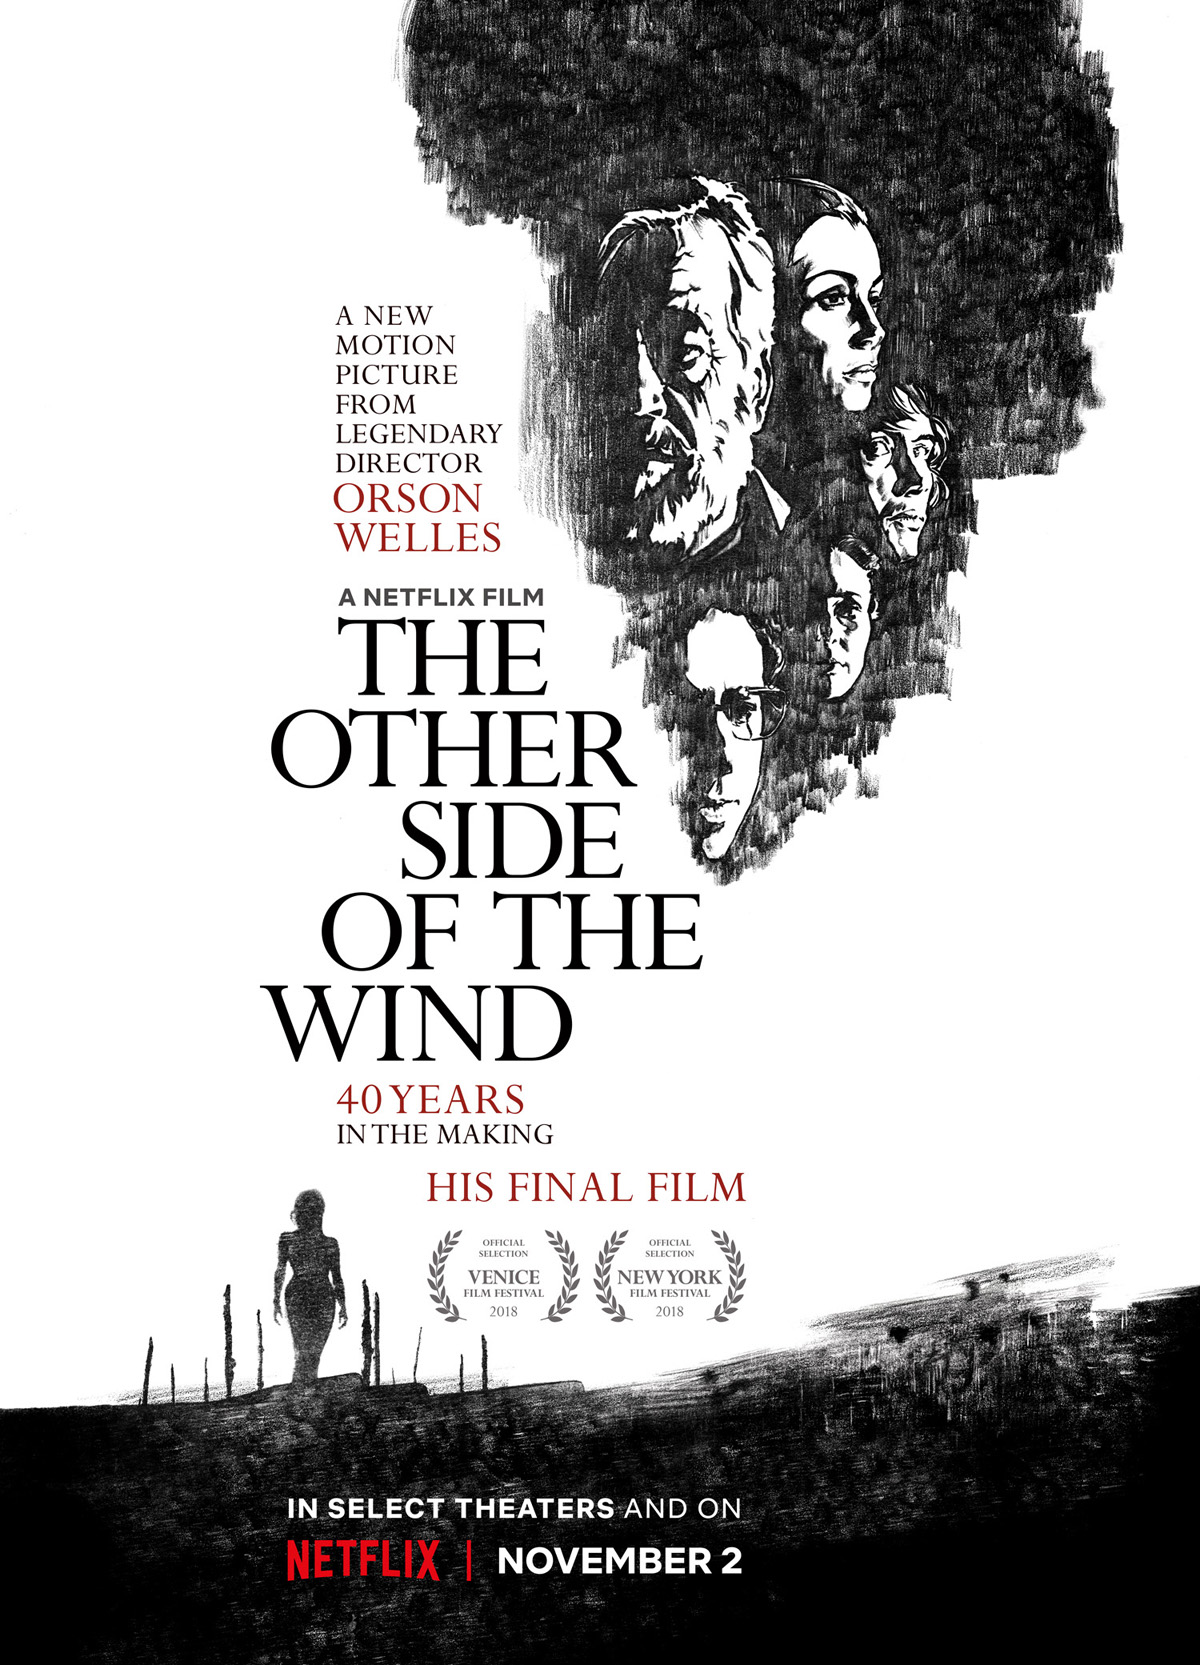 the other side of the wind poster.jpg